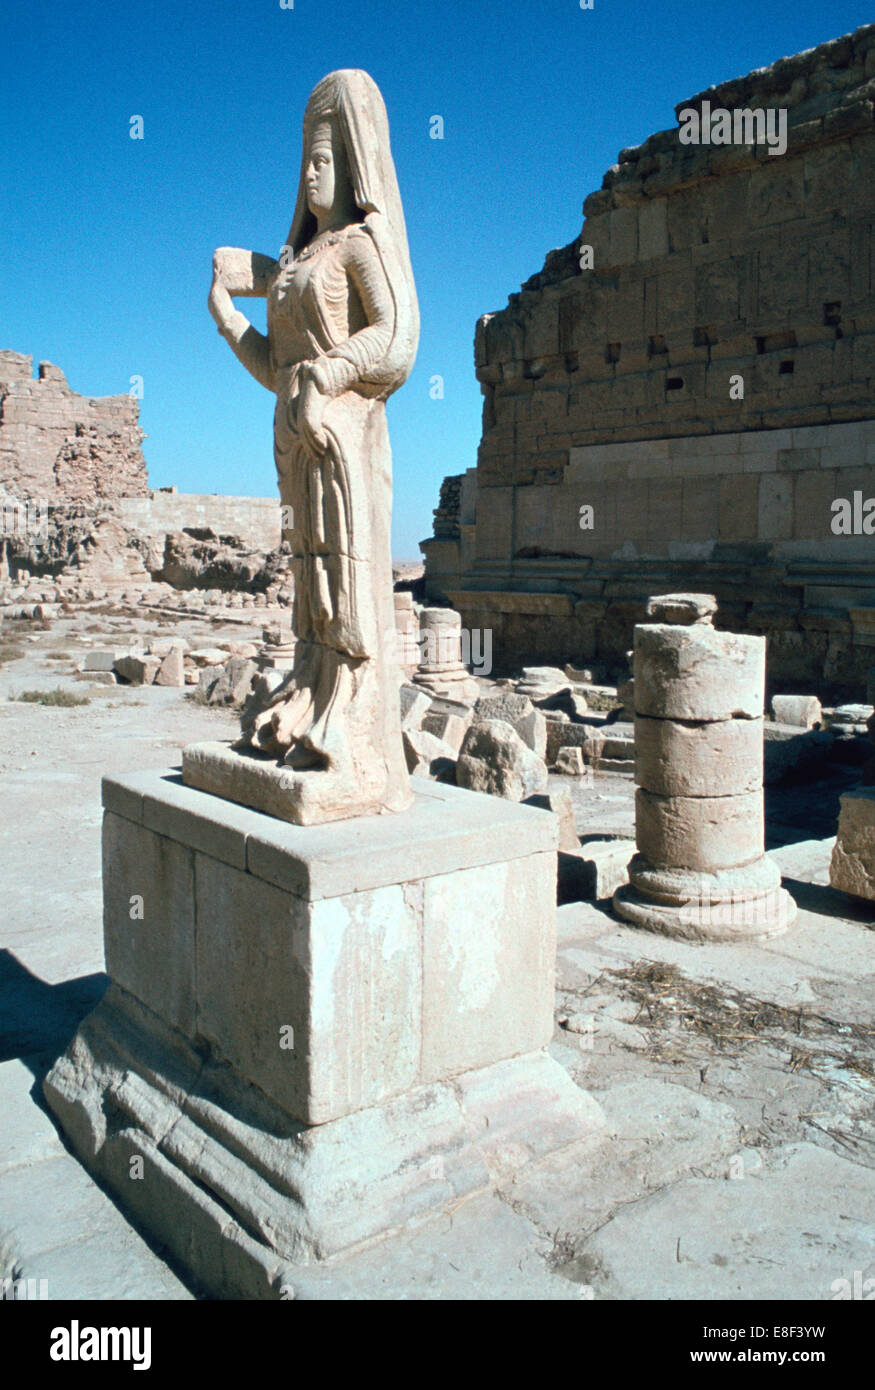 Statue of a Parthian princess, Hatra (Al-Hadr), Iraq, 1977. - Stock Image